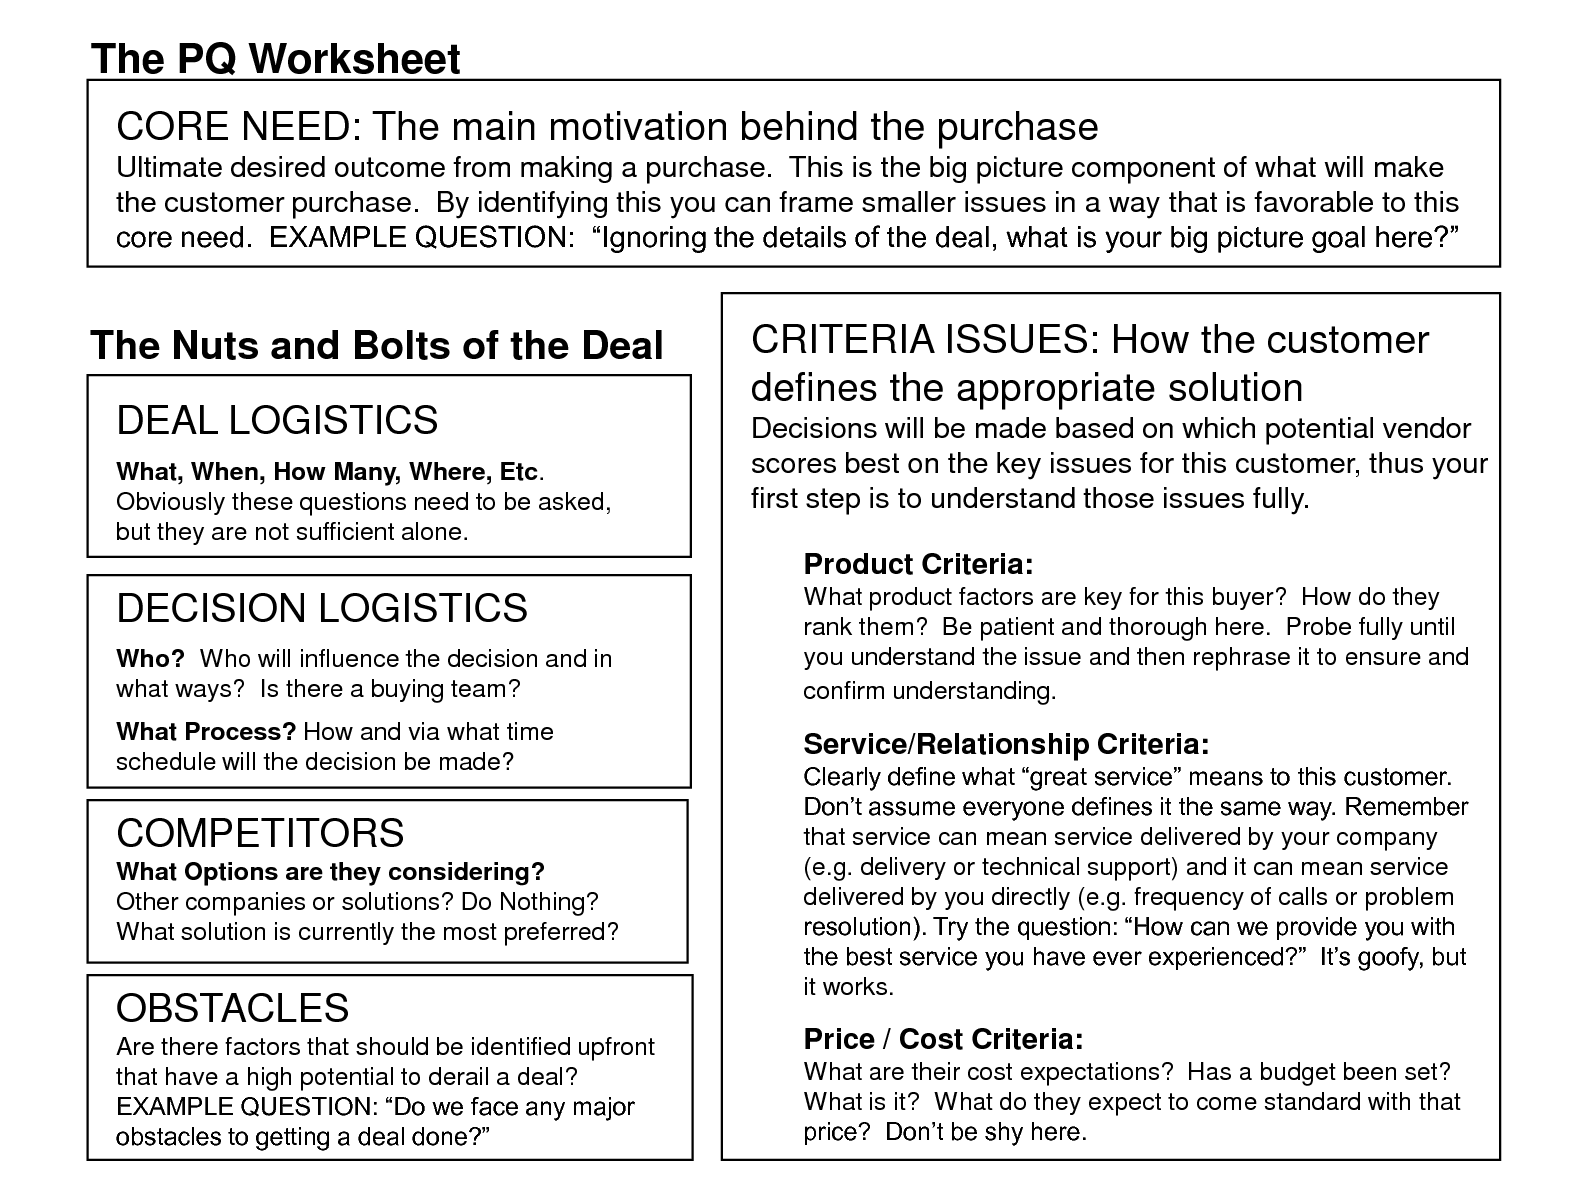 10 Best Images Of Making A Purchase Worksheet